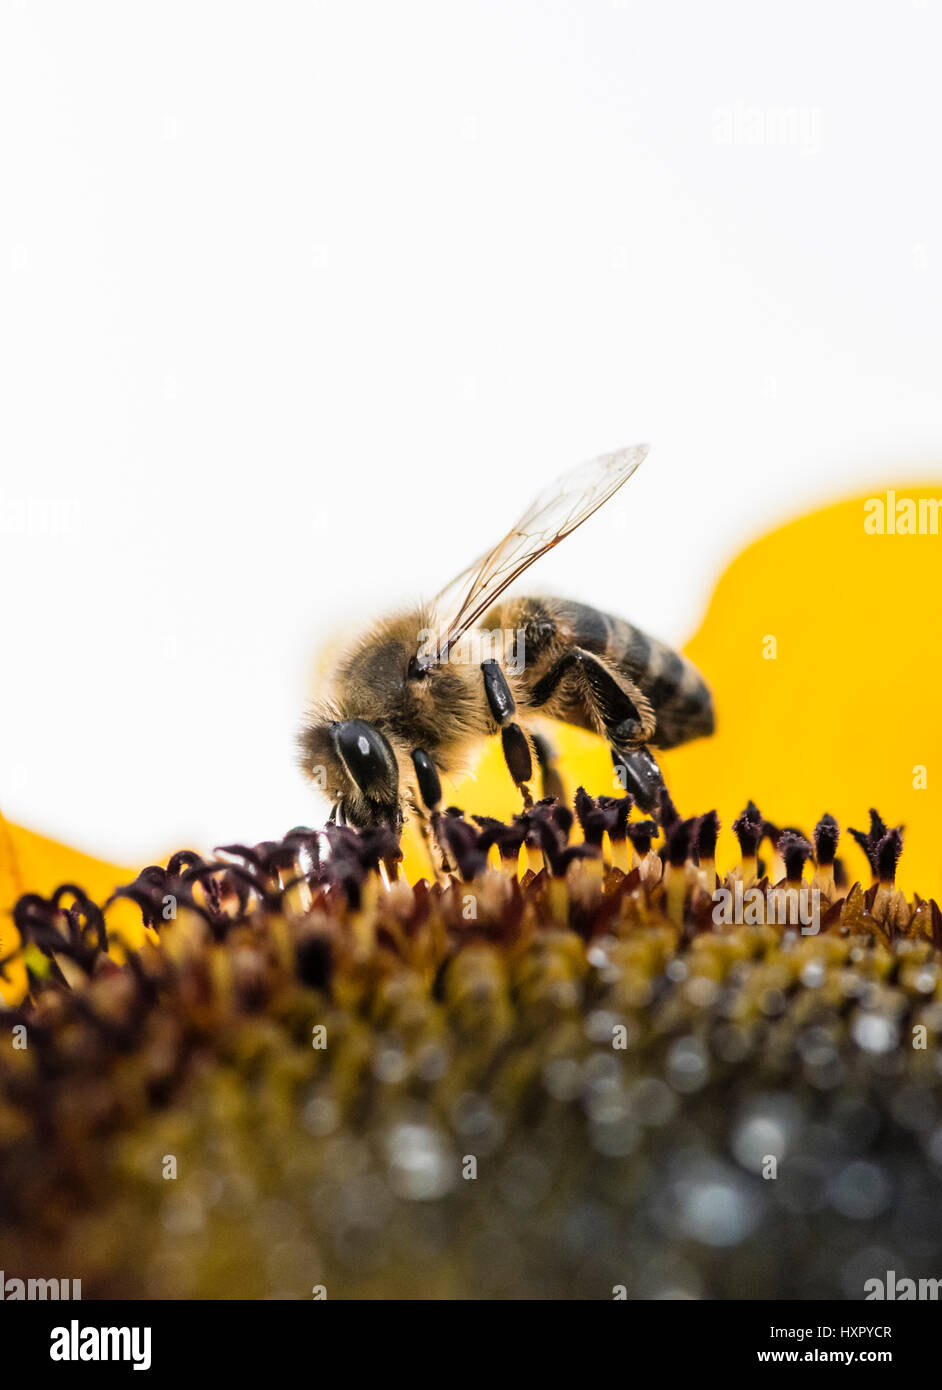 Extreme close-up of bee / honeybee (Apis mellifera) insect collecting pollen of a sunflower Stock Photo